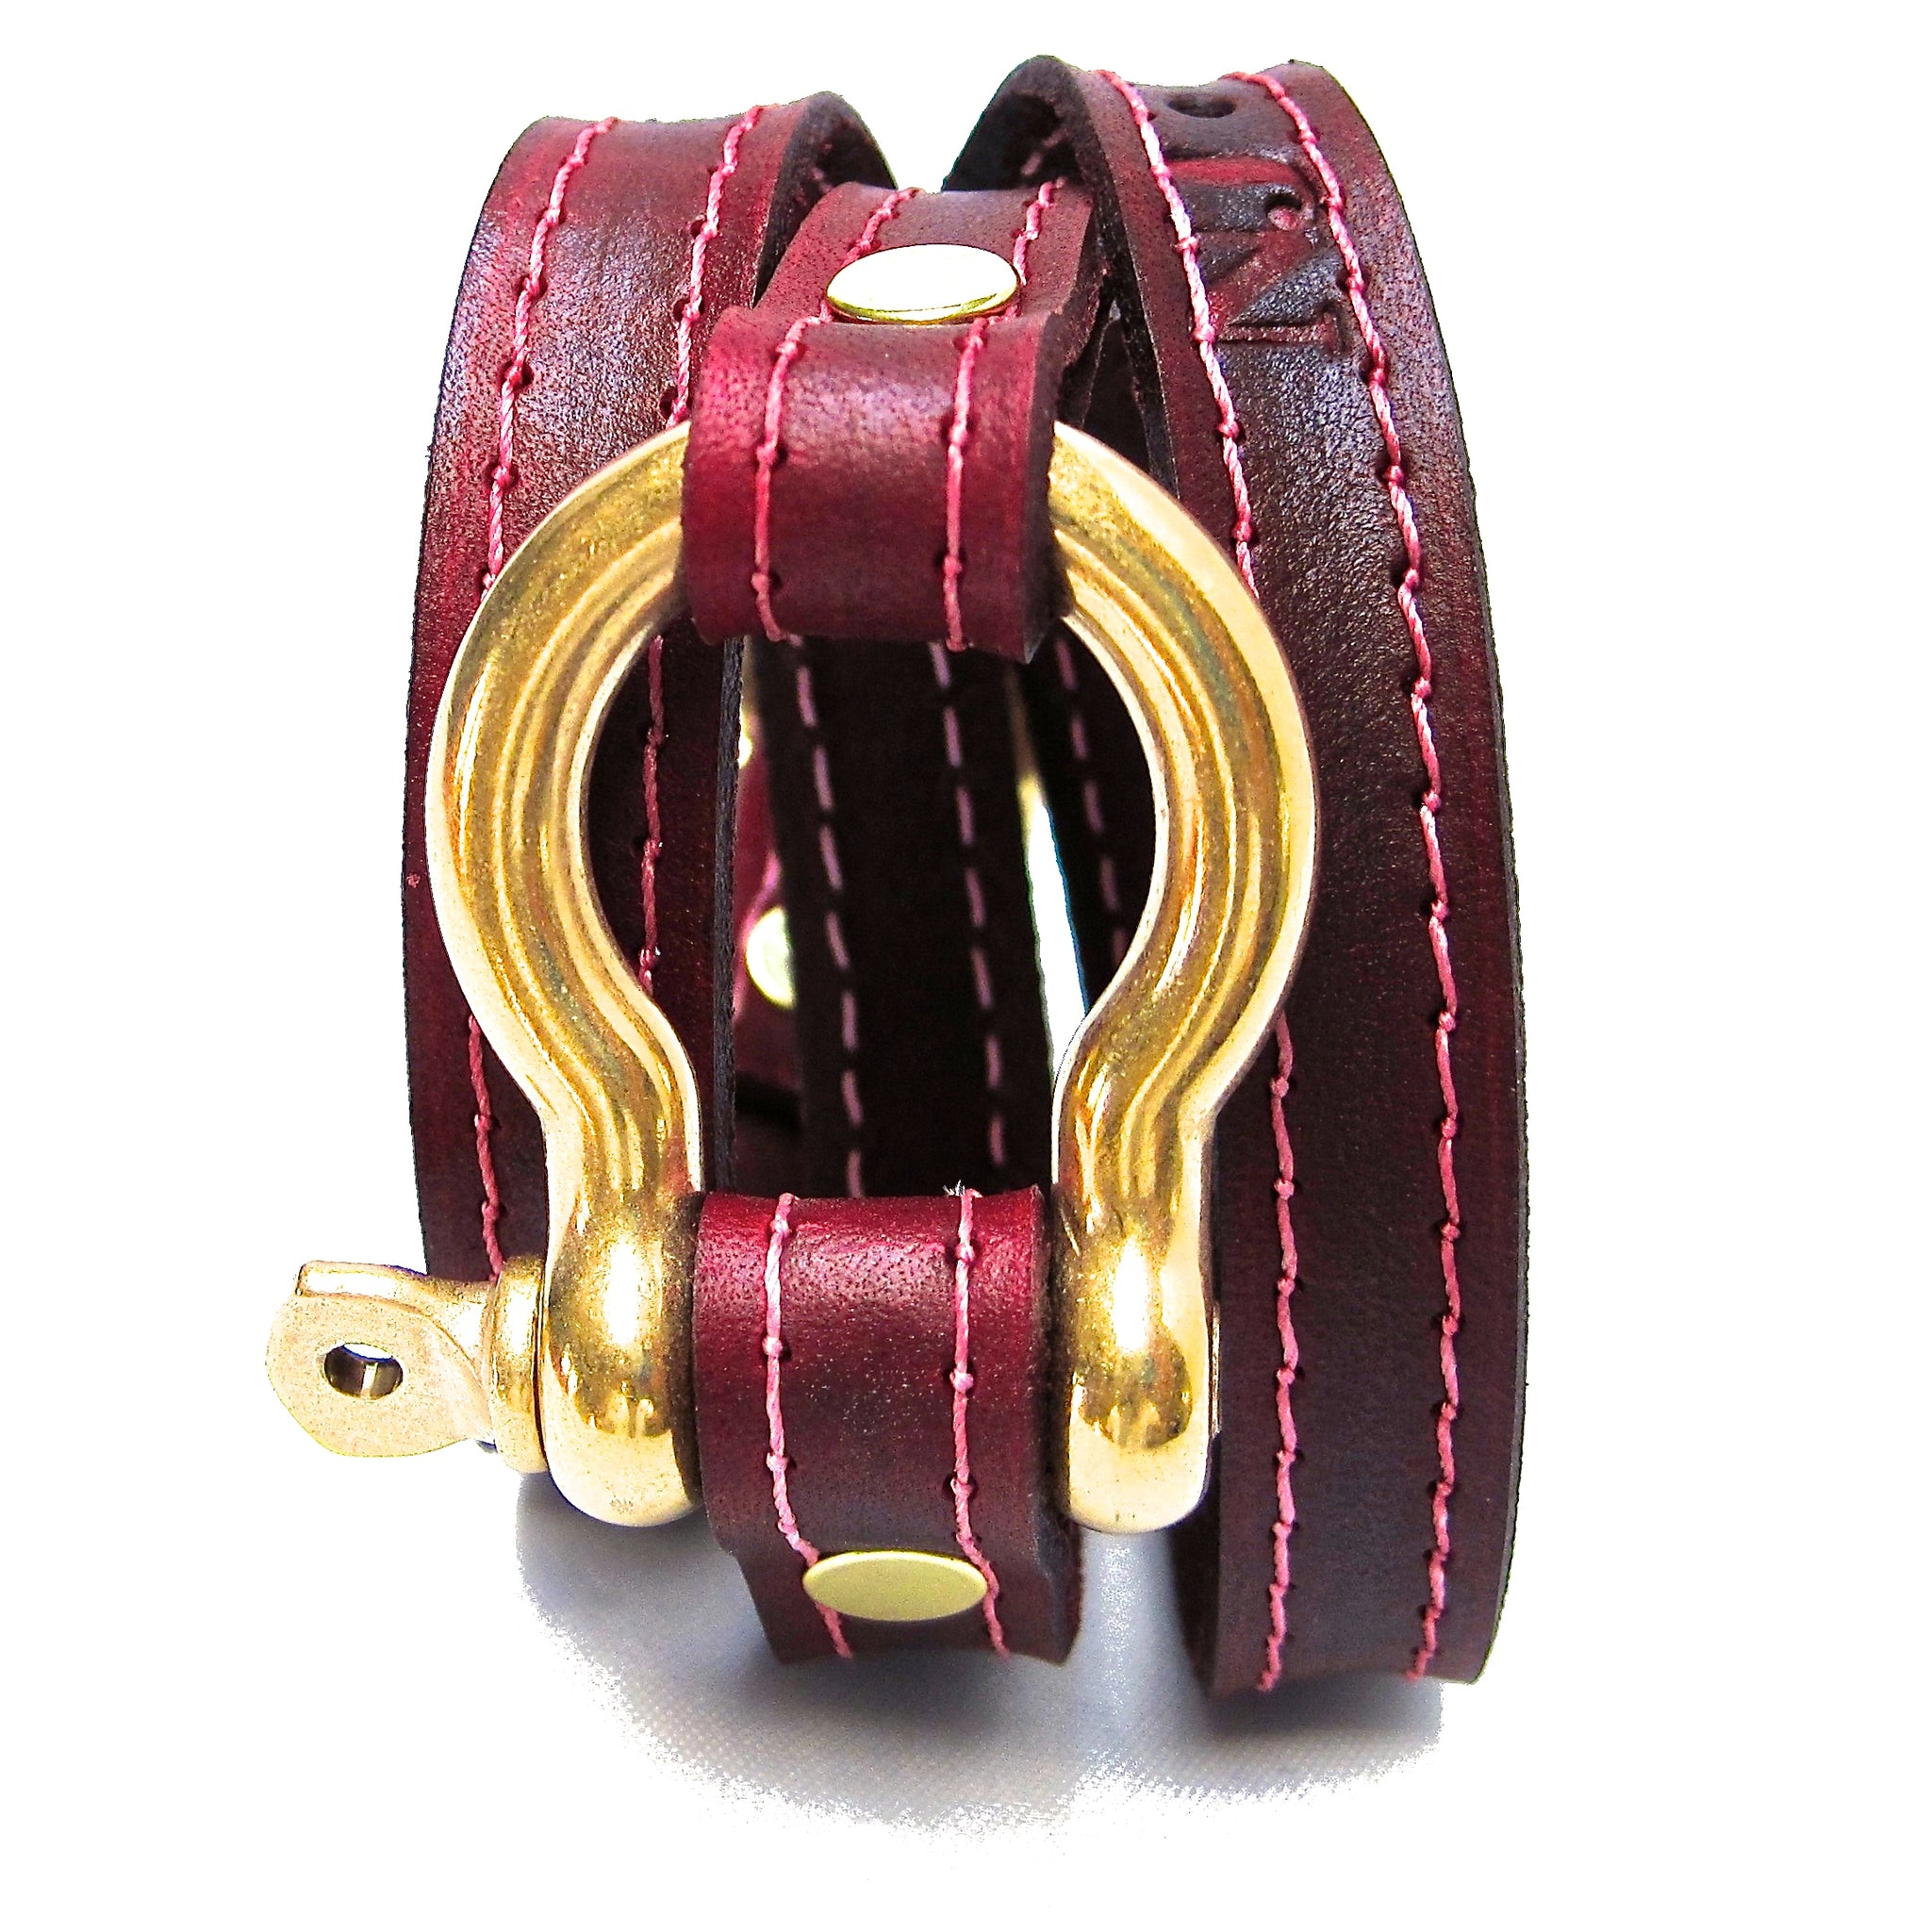 nyet jewelry Signature Gold Shackle Wraparound Bracelet Oxblood BY NYET JEWELRY